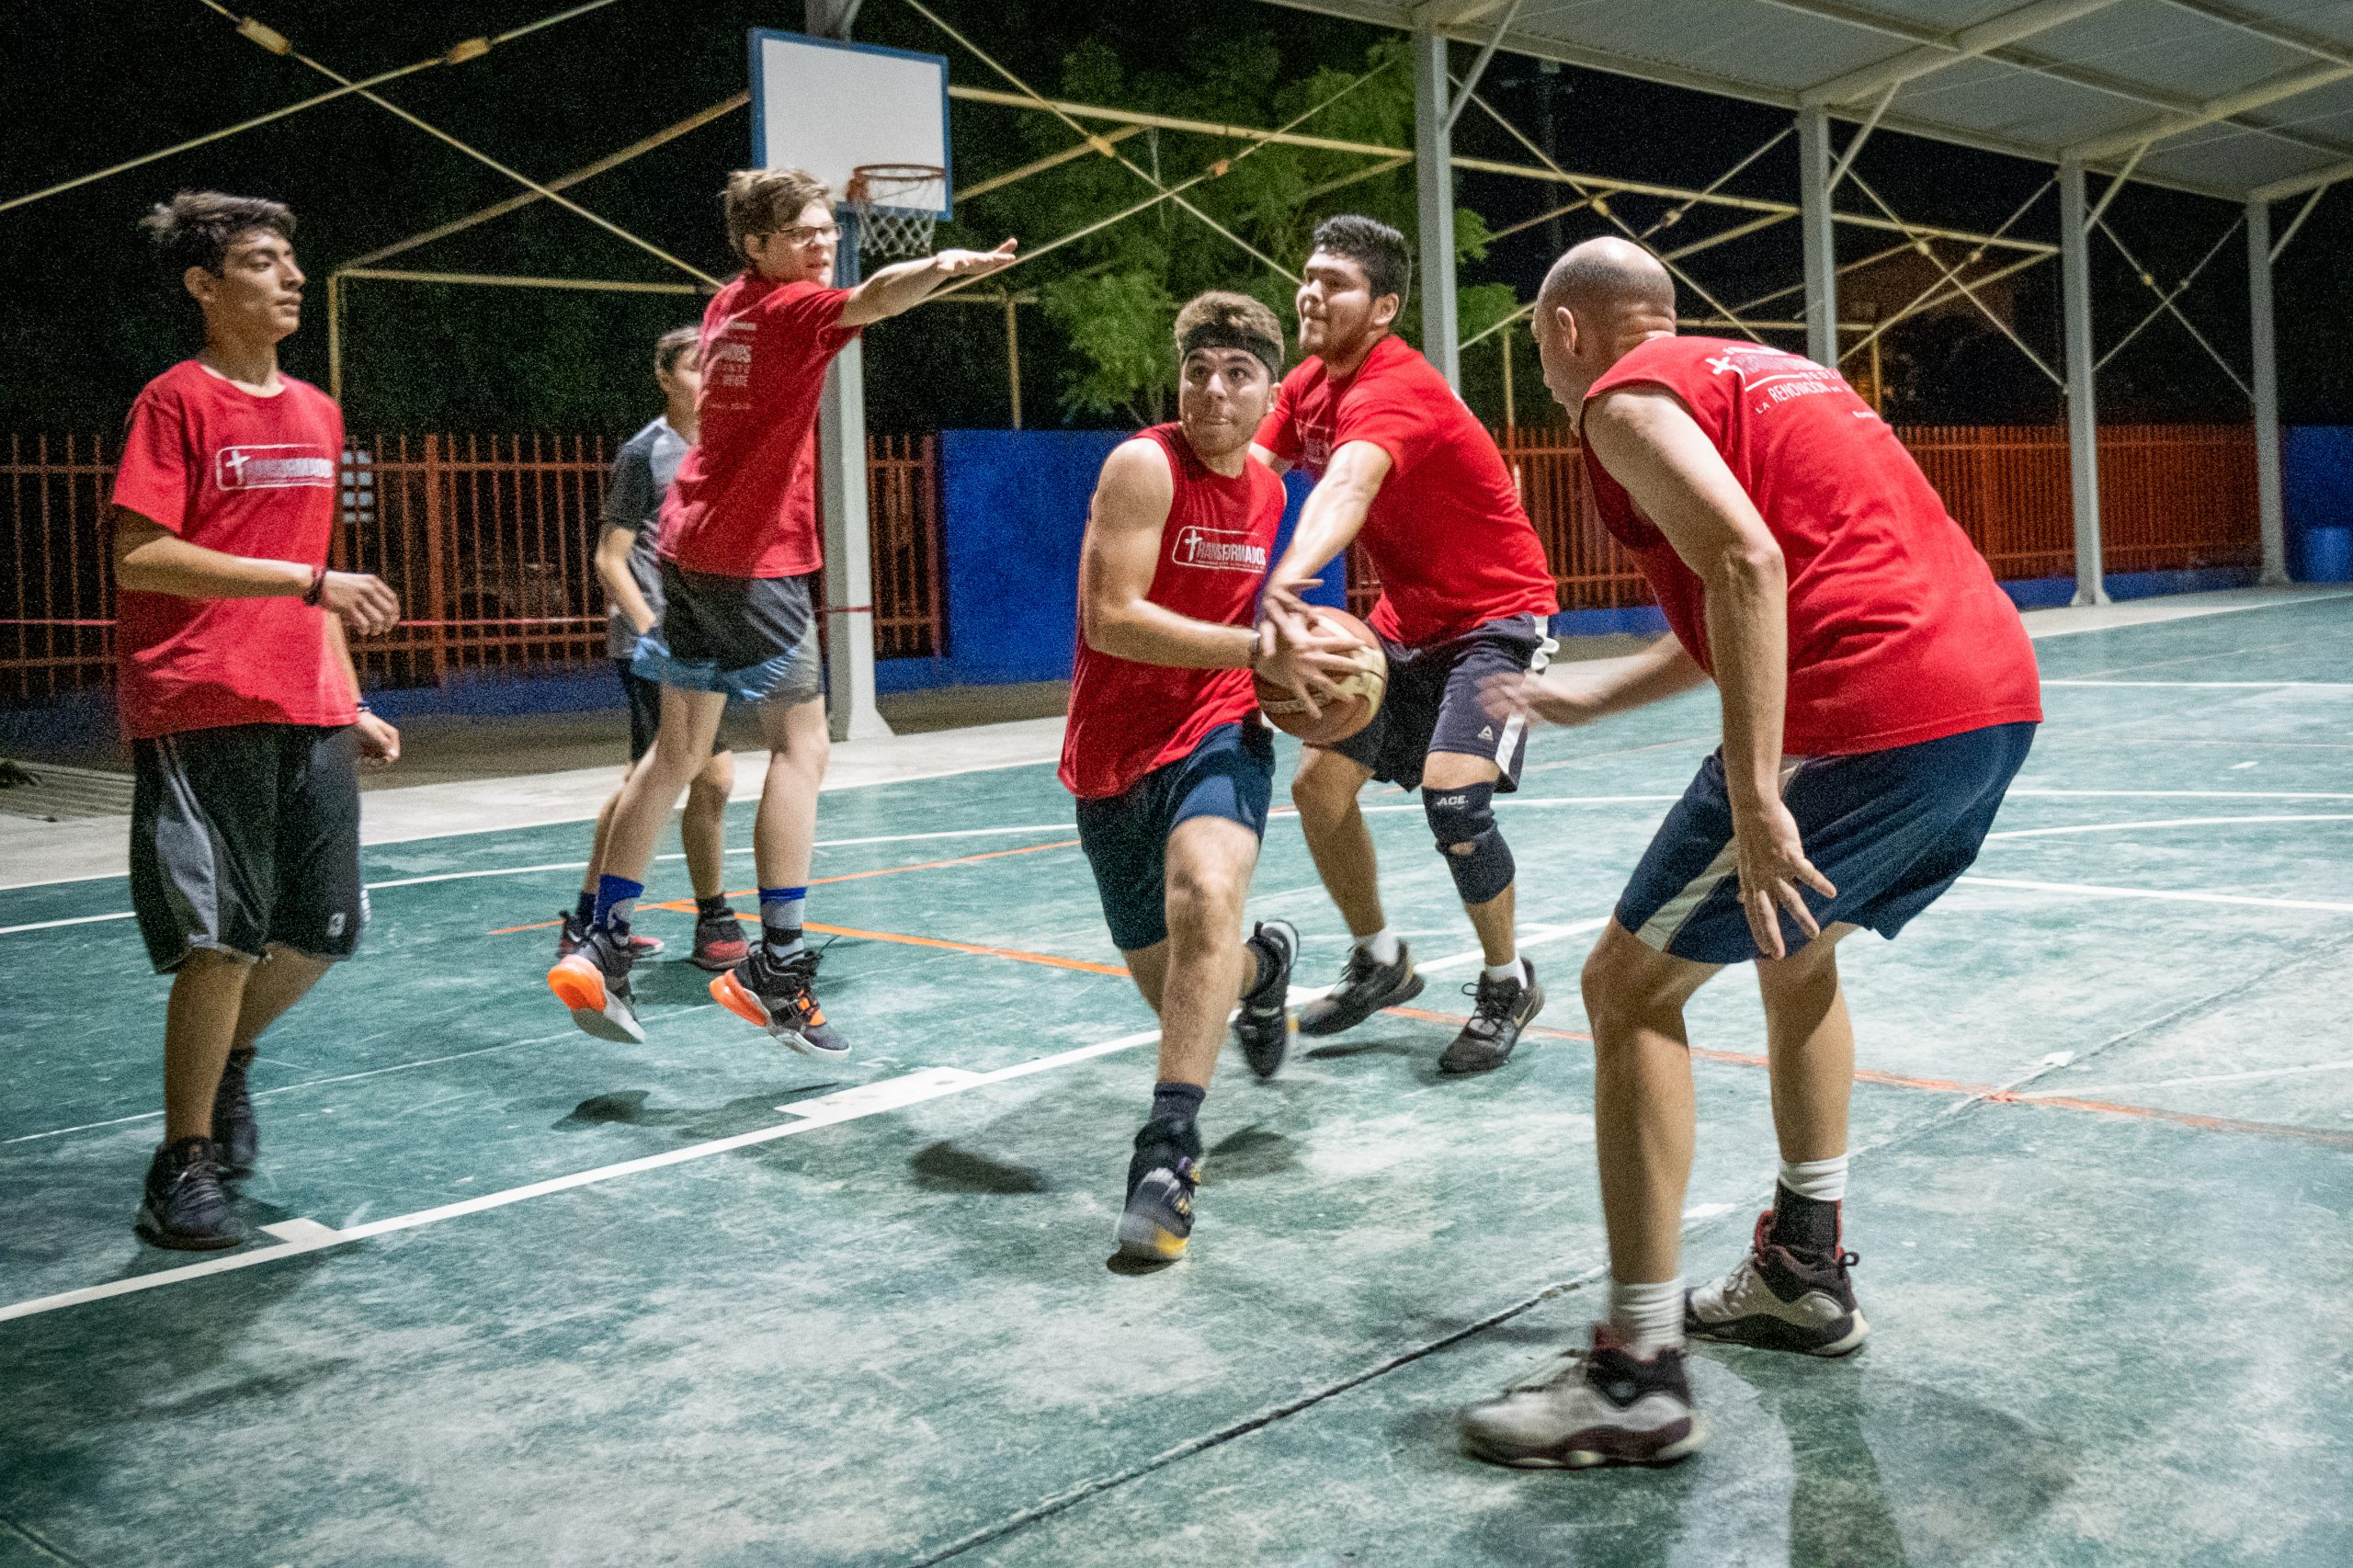 Kids play basketball at sports ministry Transformados